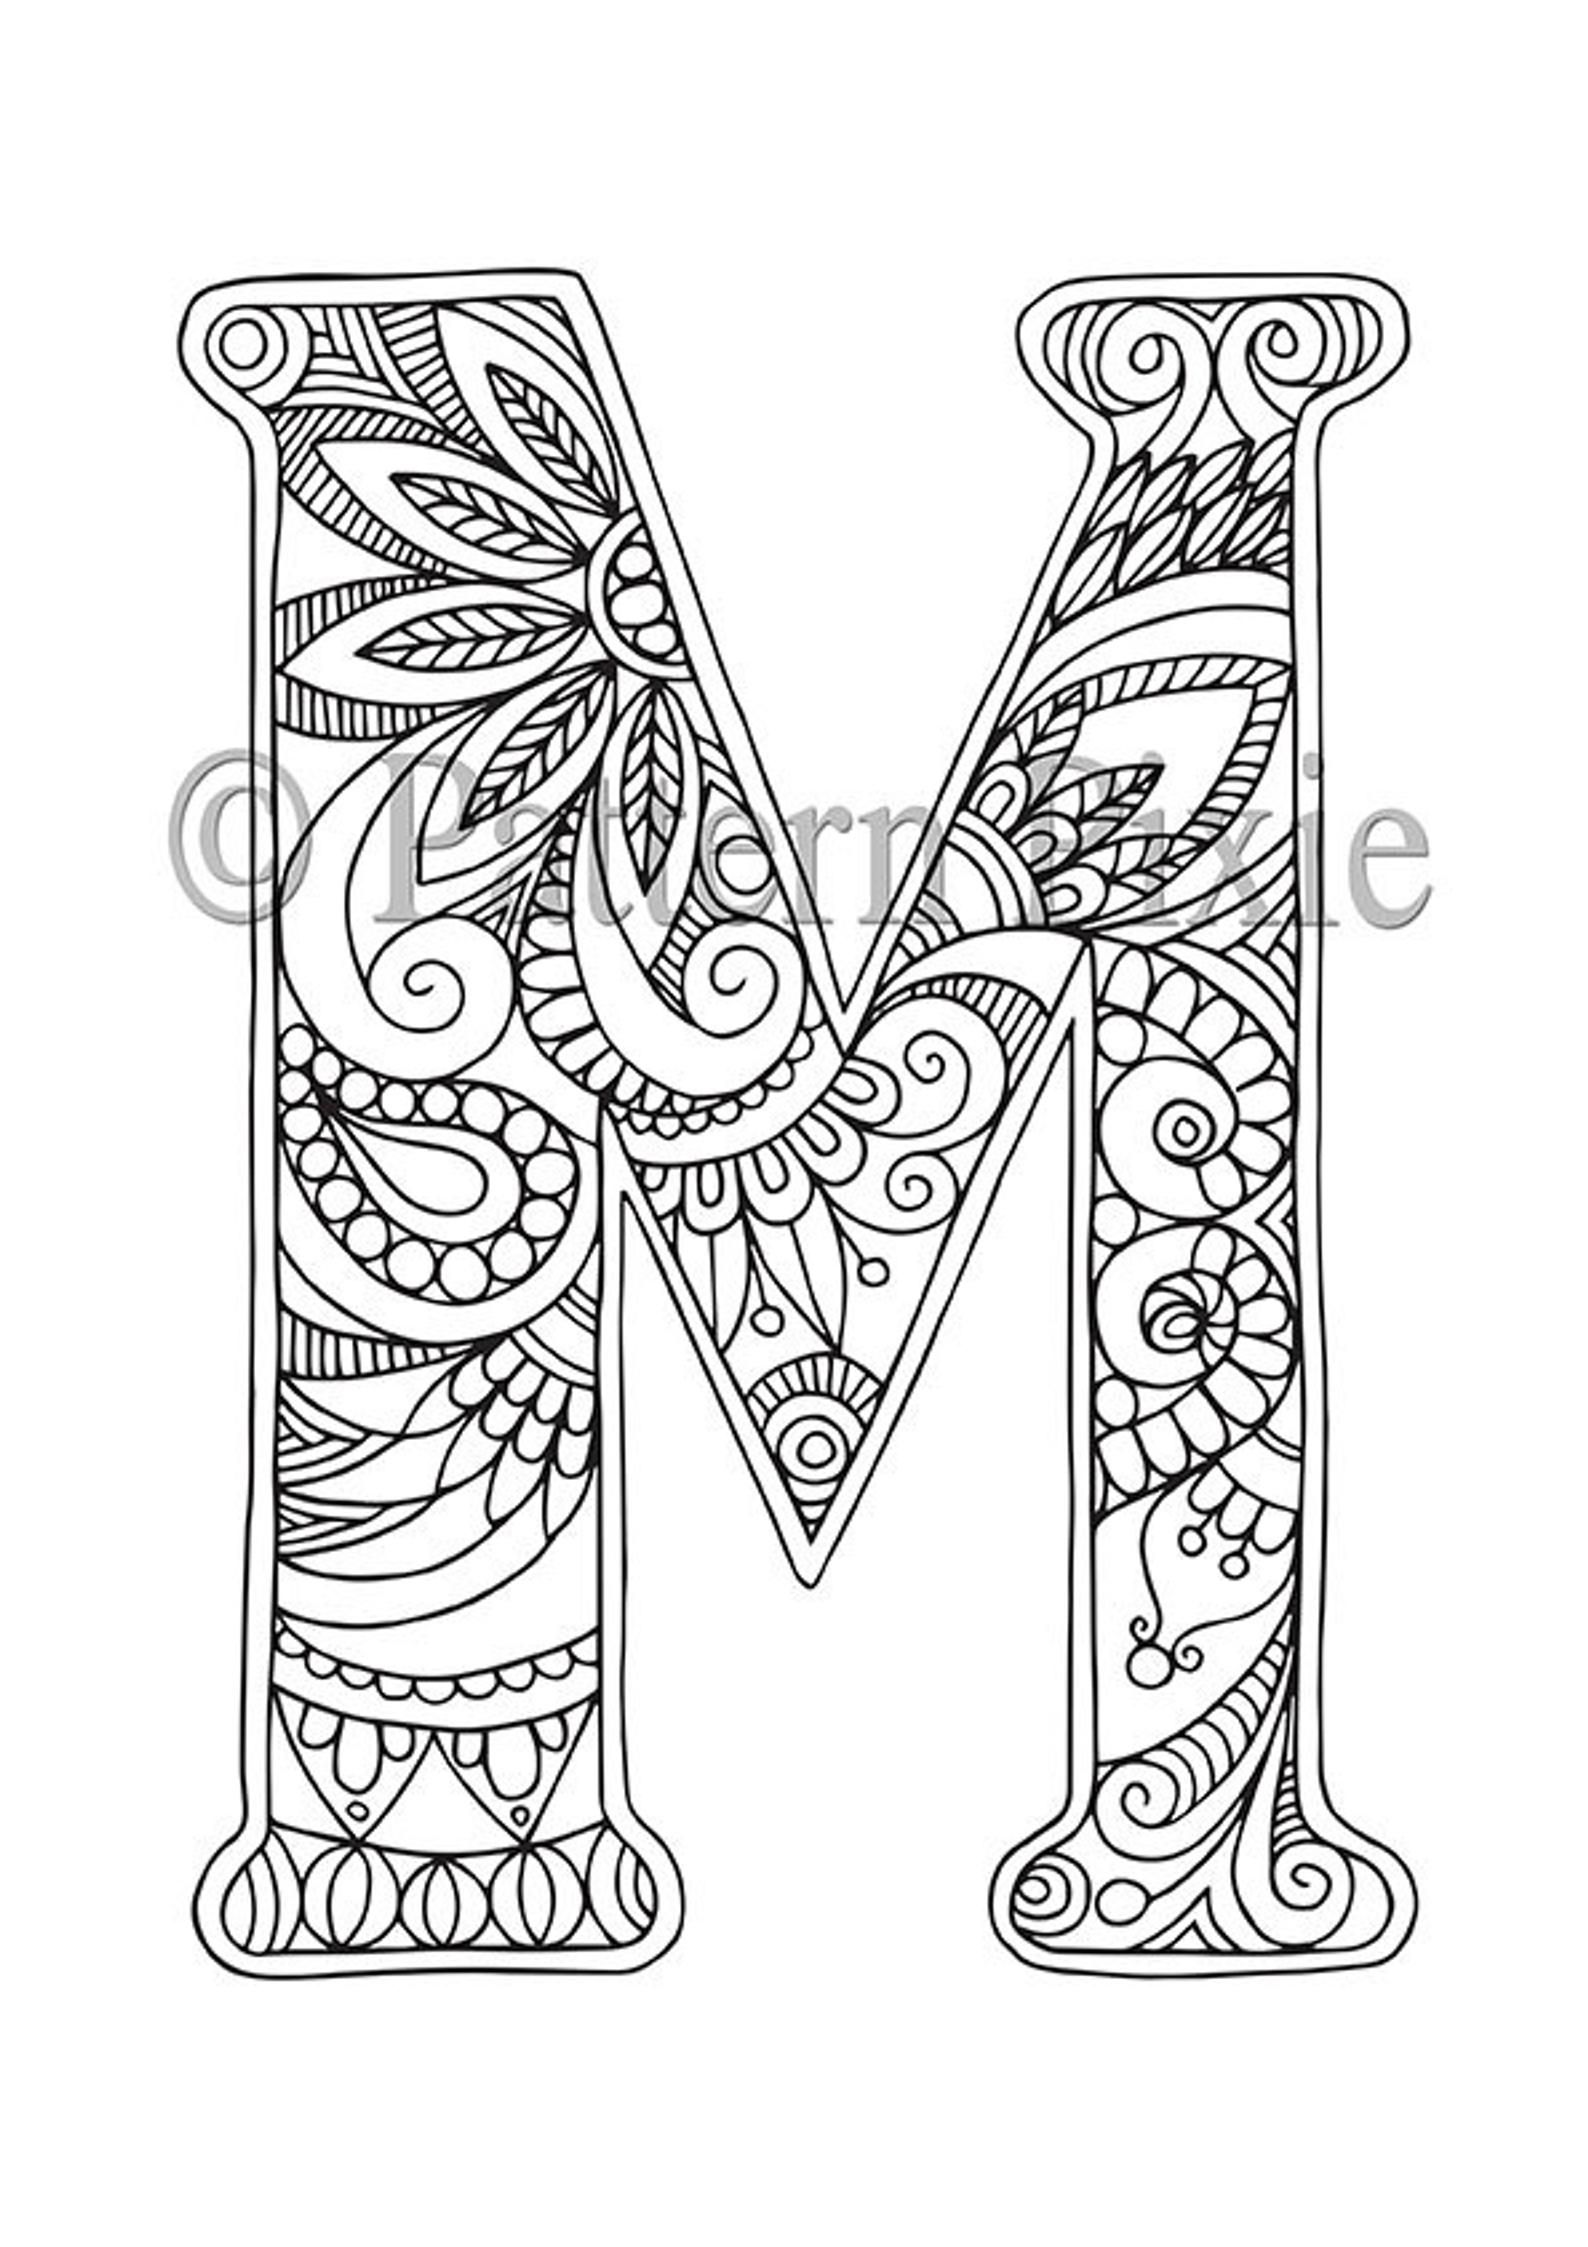 Adult Colouring Page Alphabet Letter M In 2020 With Images Lettering Alphabet Coloring Pages Alphabet Coloring Pages